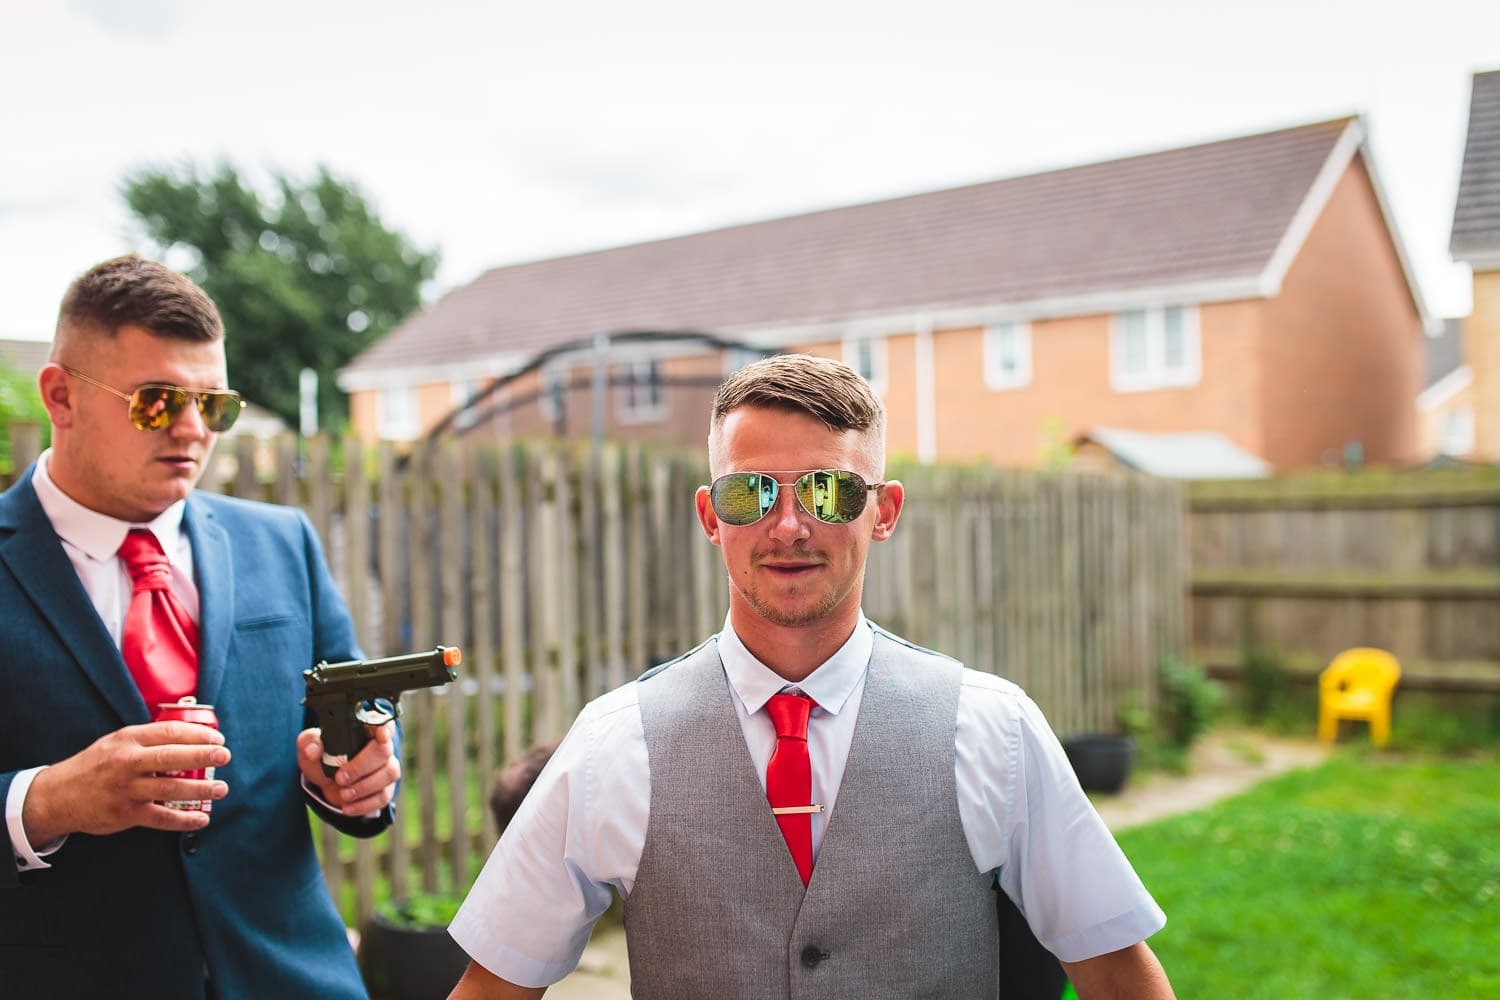 funny candid wedding picture of grooms party messing around by chapter one photography